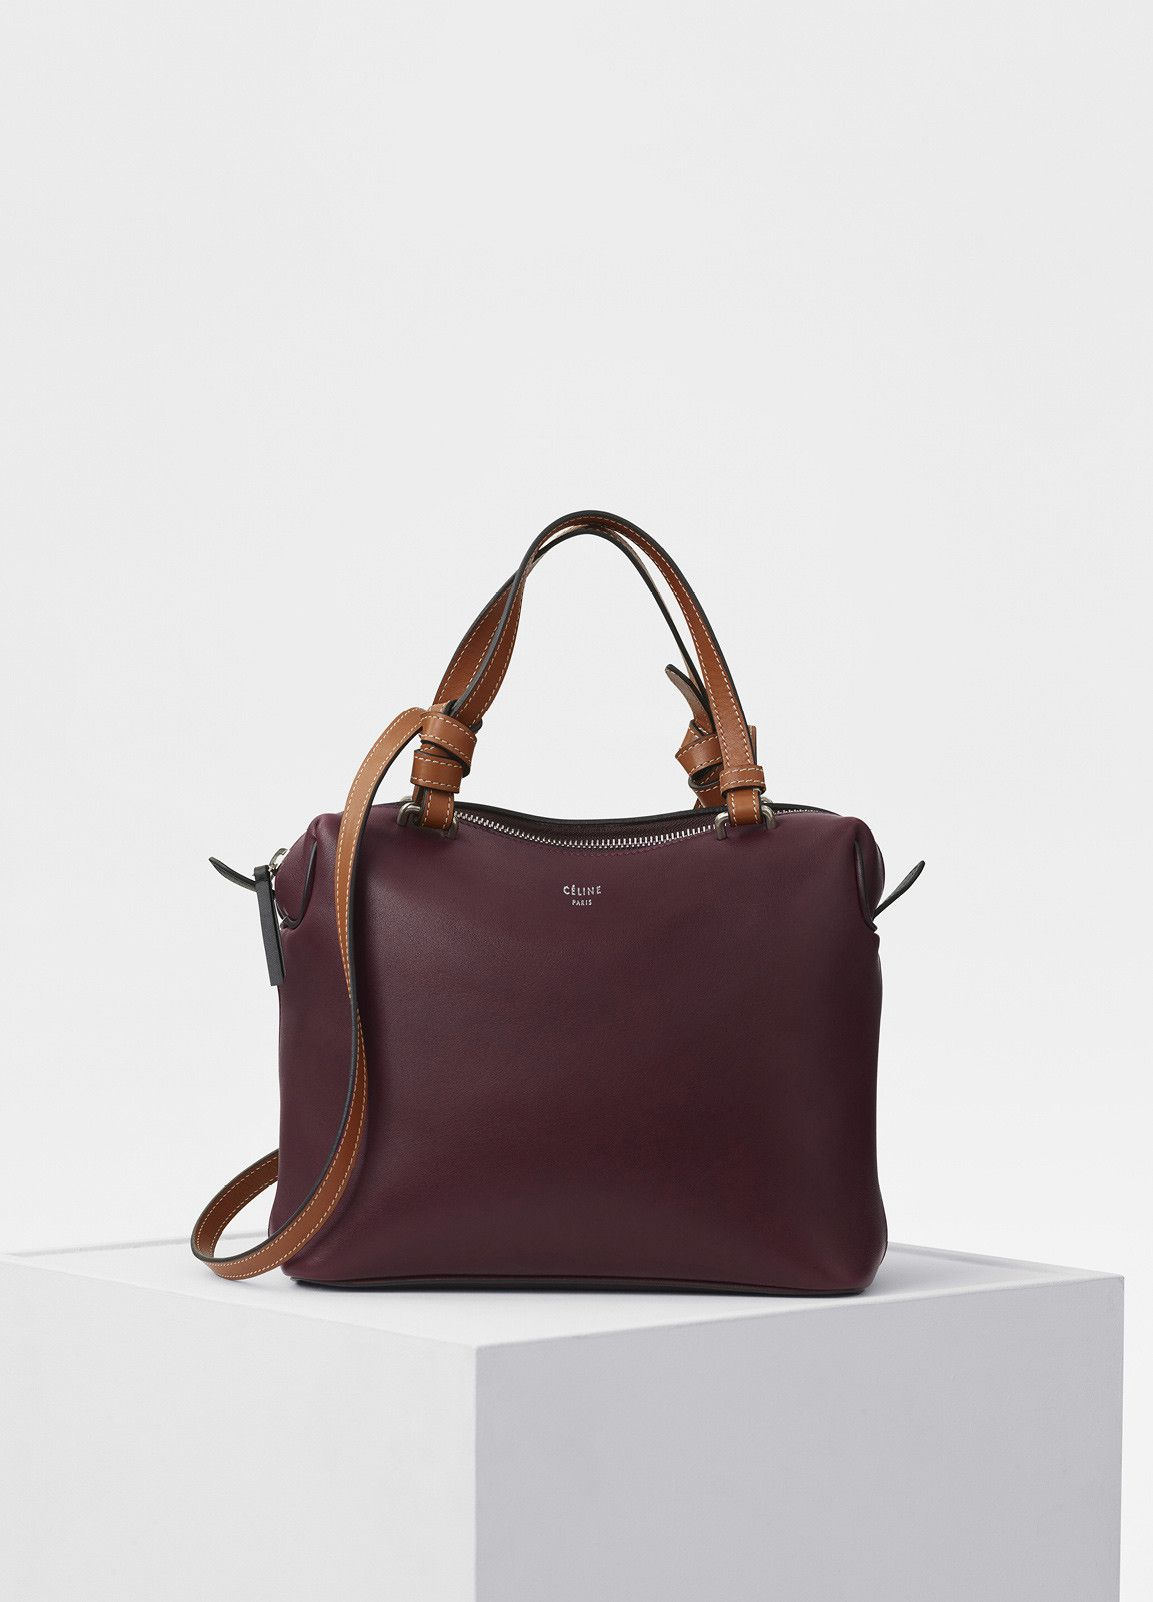 Small Soft Cube Bag in Smooth Calfskin - Fall   Winter Collection 2017  49182da249979